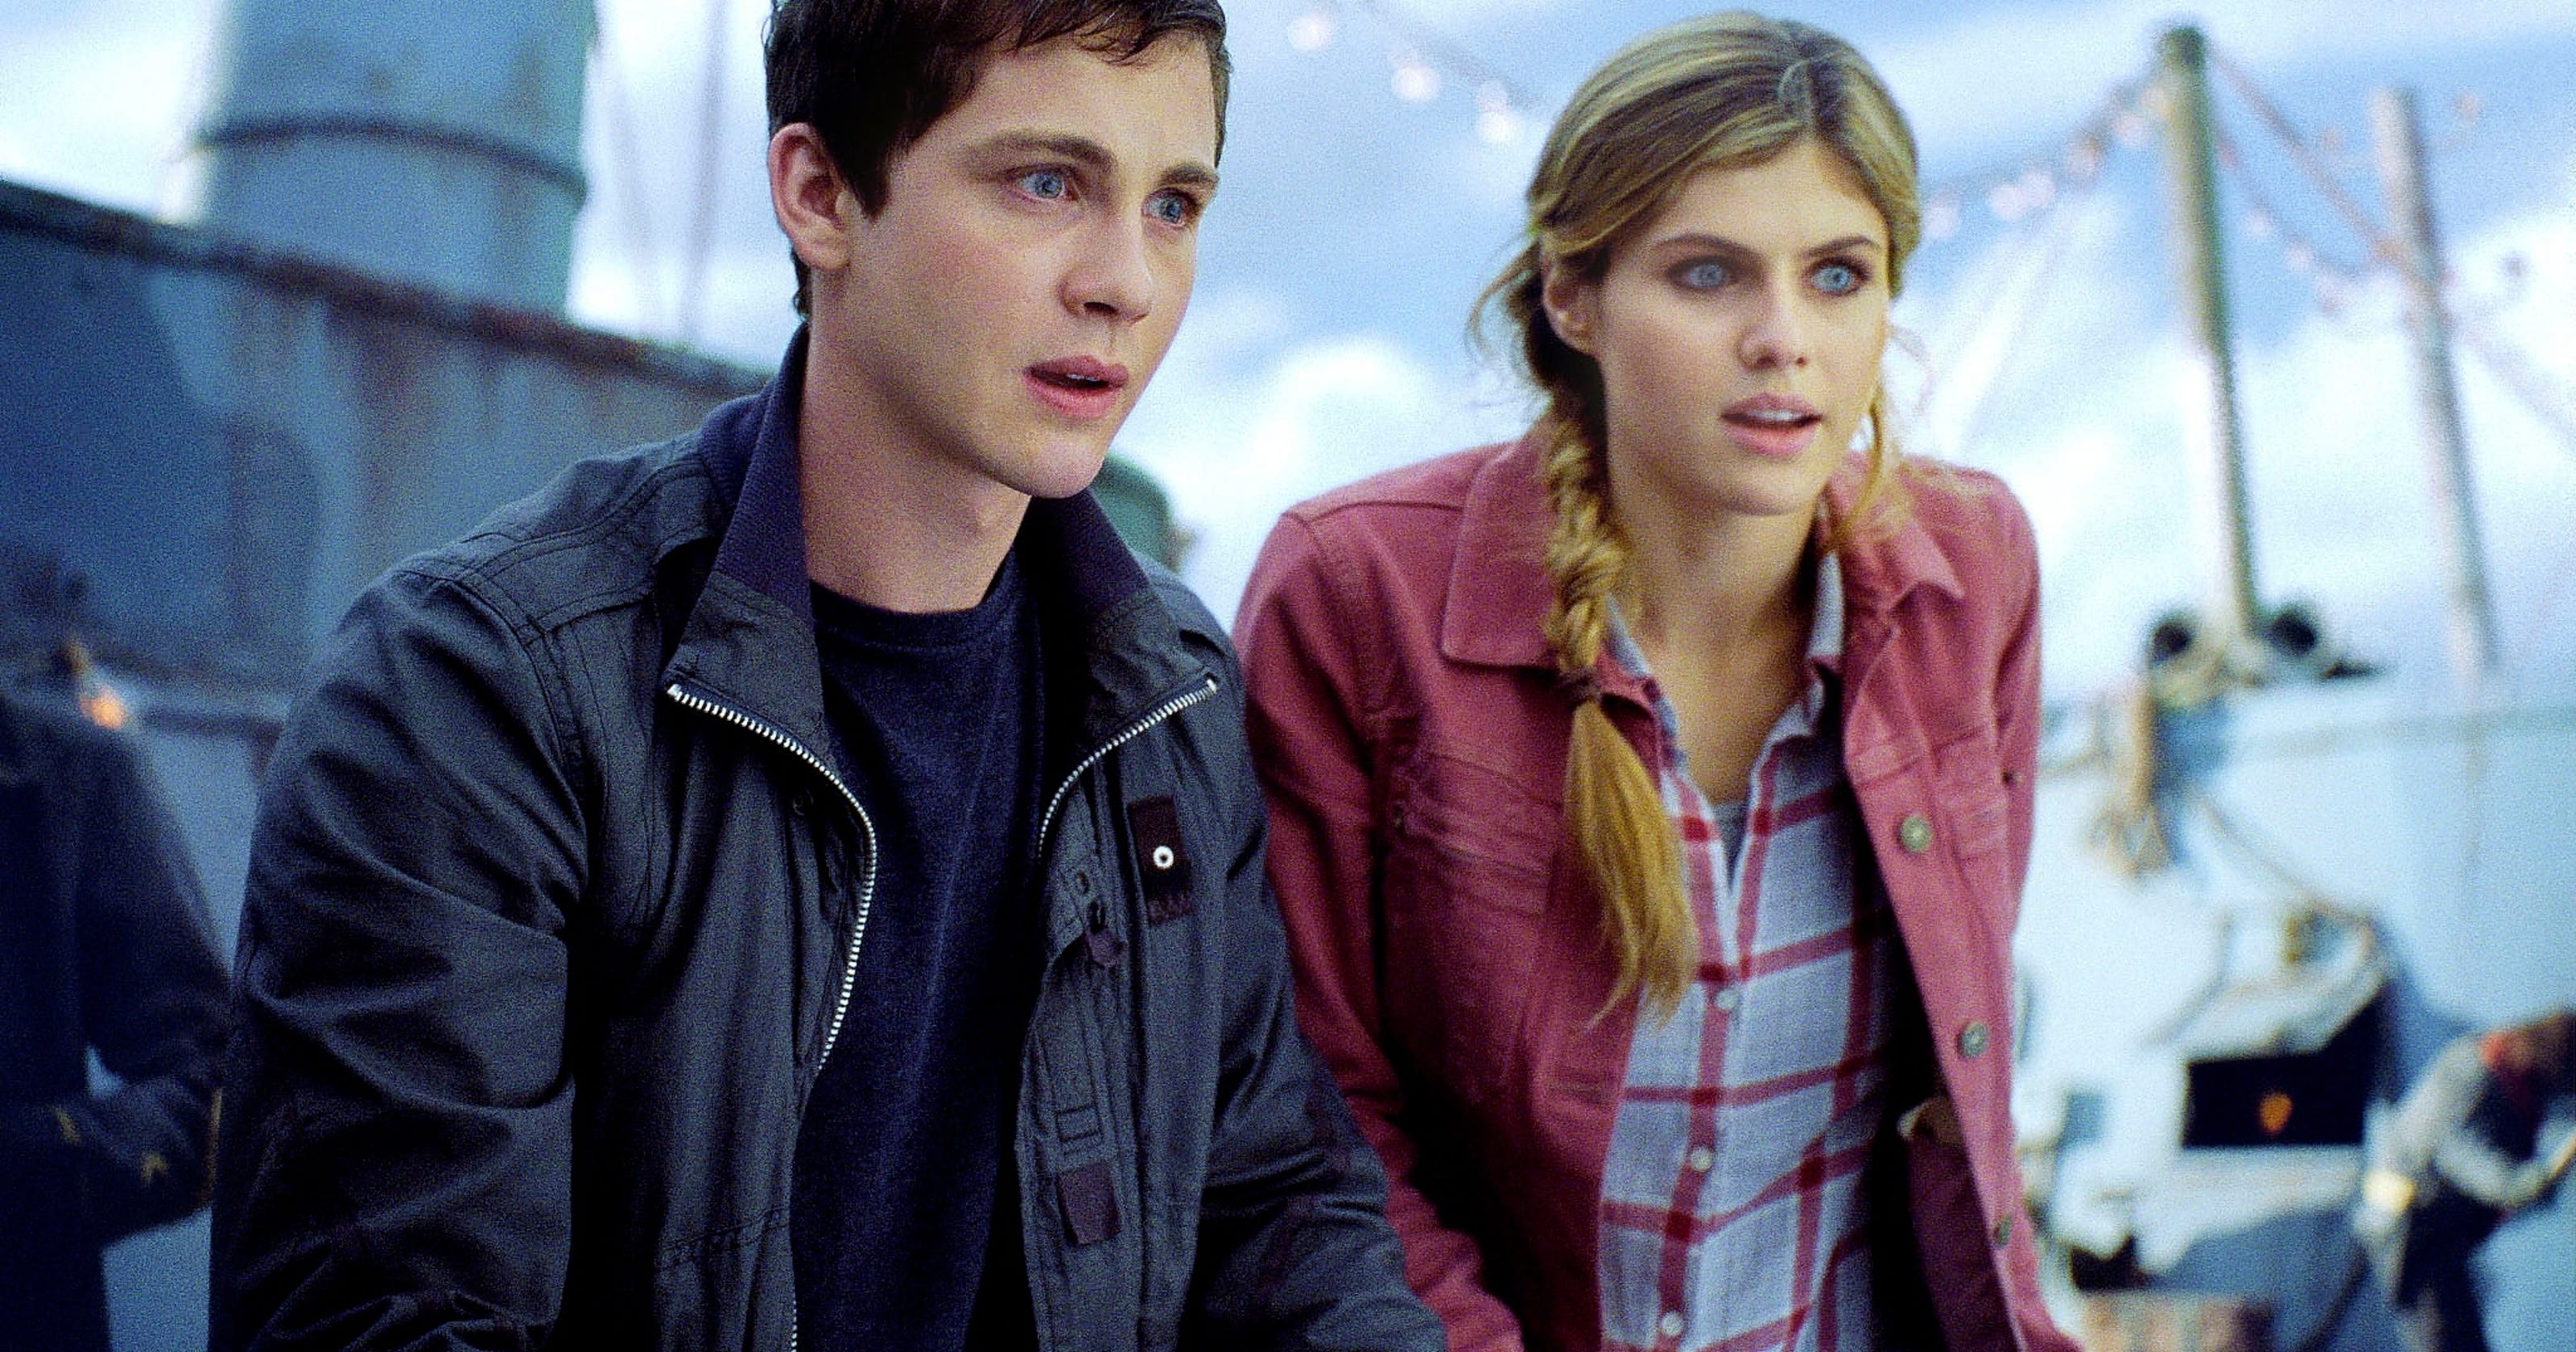 Percy Jackson's appeal drowns in 'Sea of Monsters'